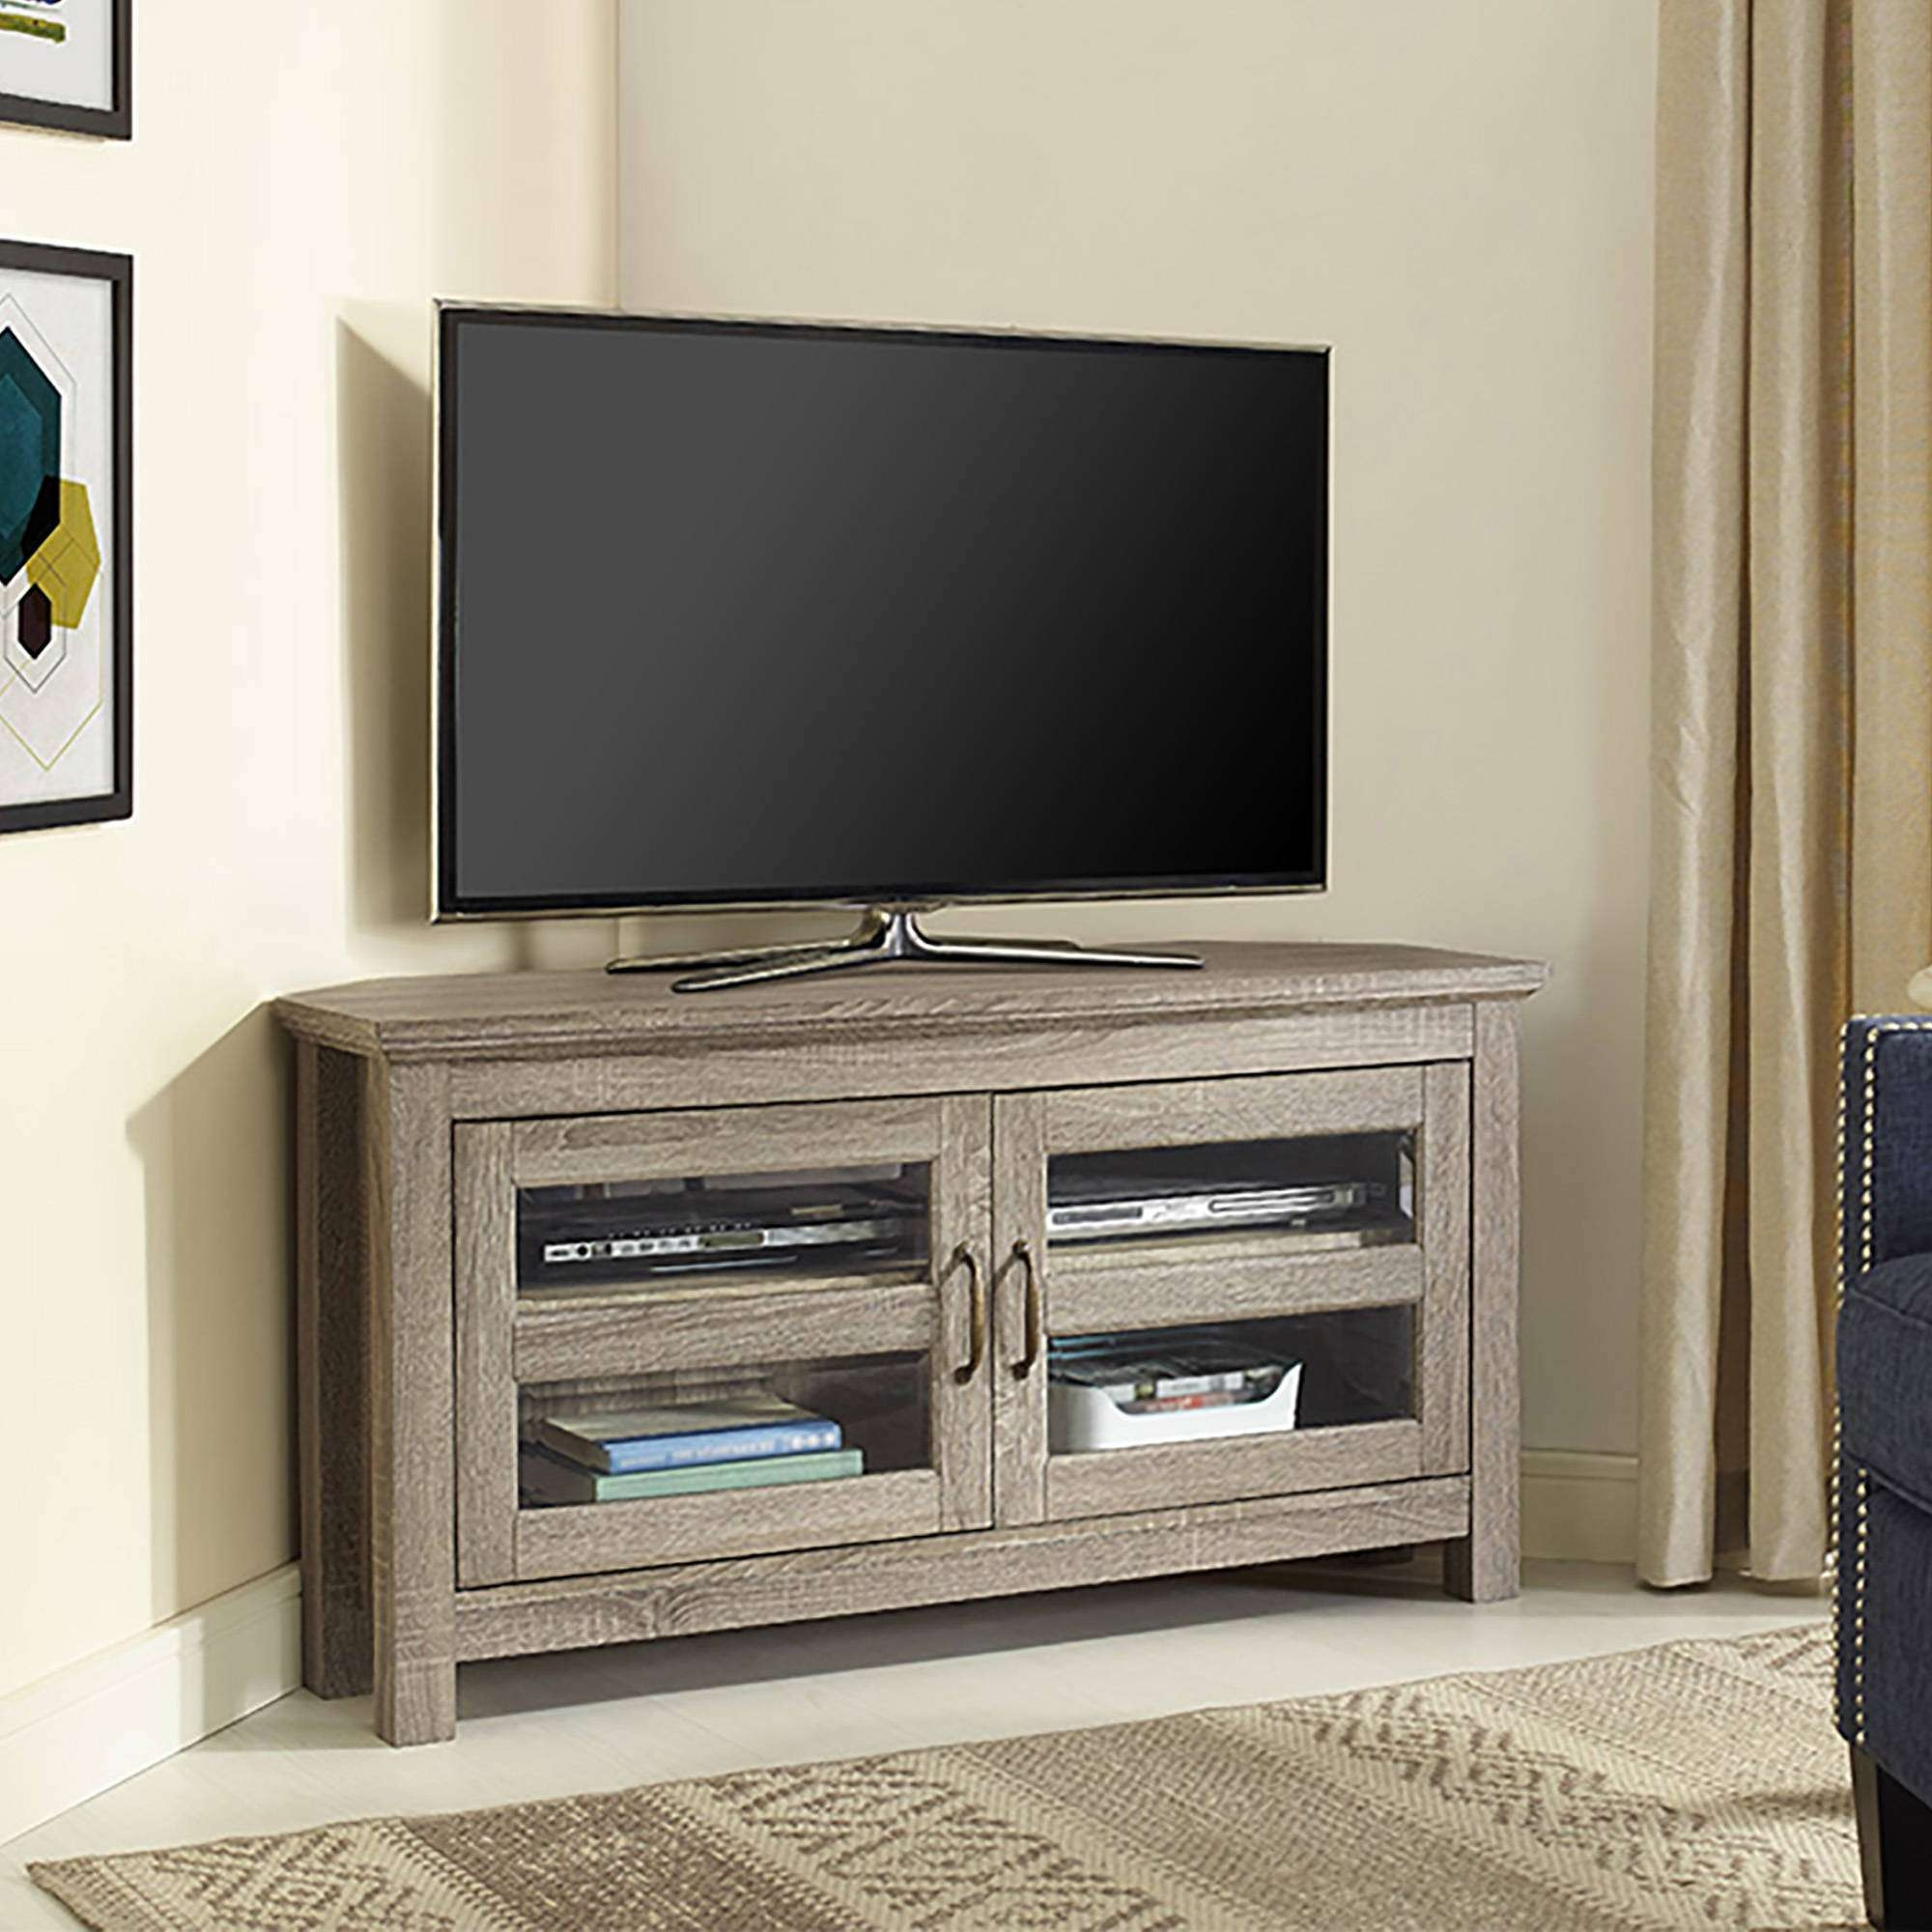 Tv : 24 Inch Corner Tv Stands Charismatic 24 Inch Corner Tv Stands Within Large Corner Tv Stands (View 10 of 15)